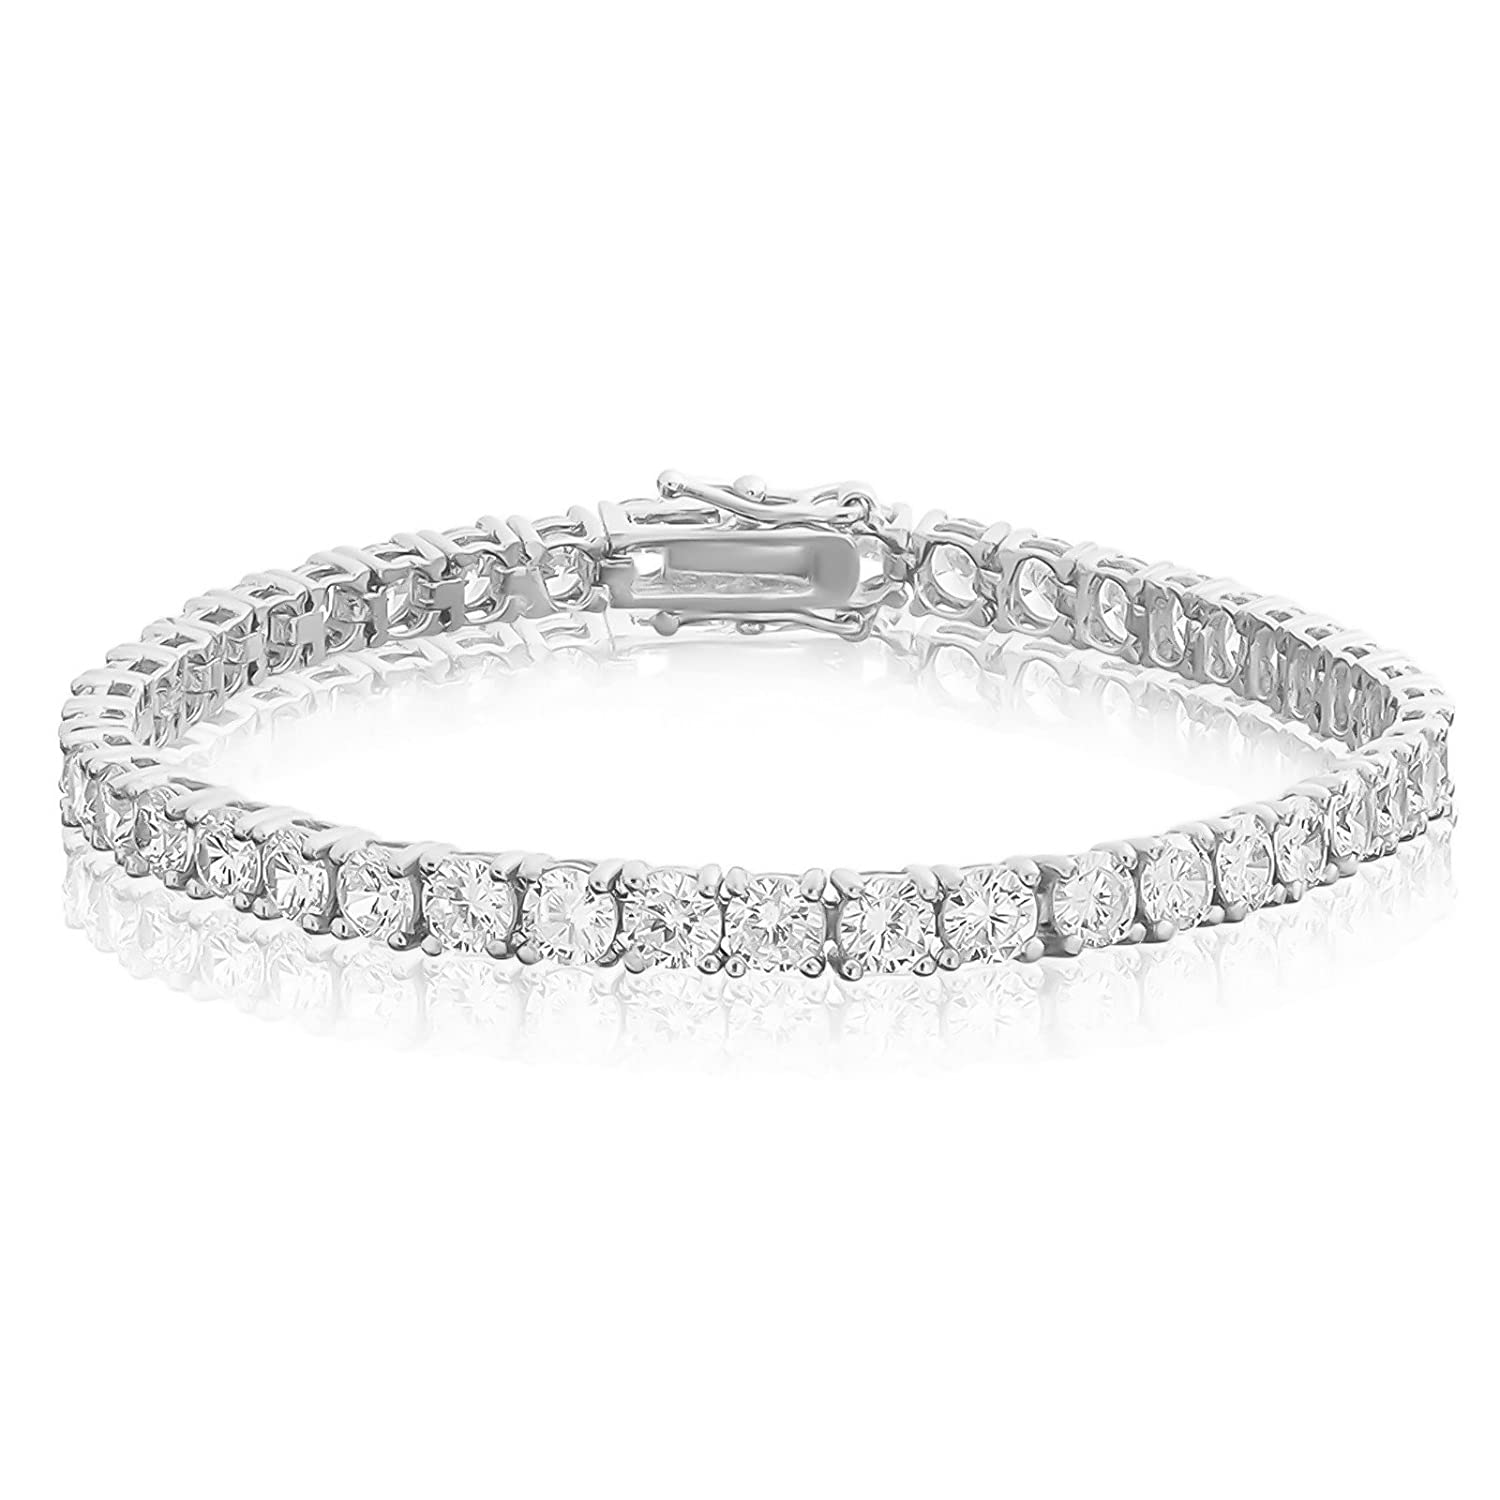 4e621c916d1a9 Bling Bling NY New 1 Row Tennis Necklace/Bracelet 20/22/24 inch Silver  Finish Lab Created Diamonds 4MM Iced Out Solitaires (Bracelet 6.5'')